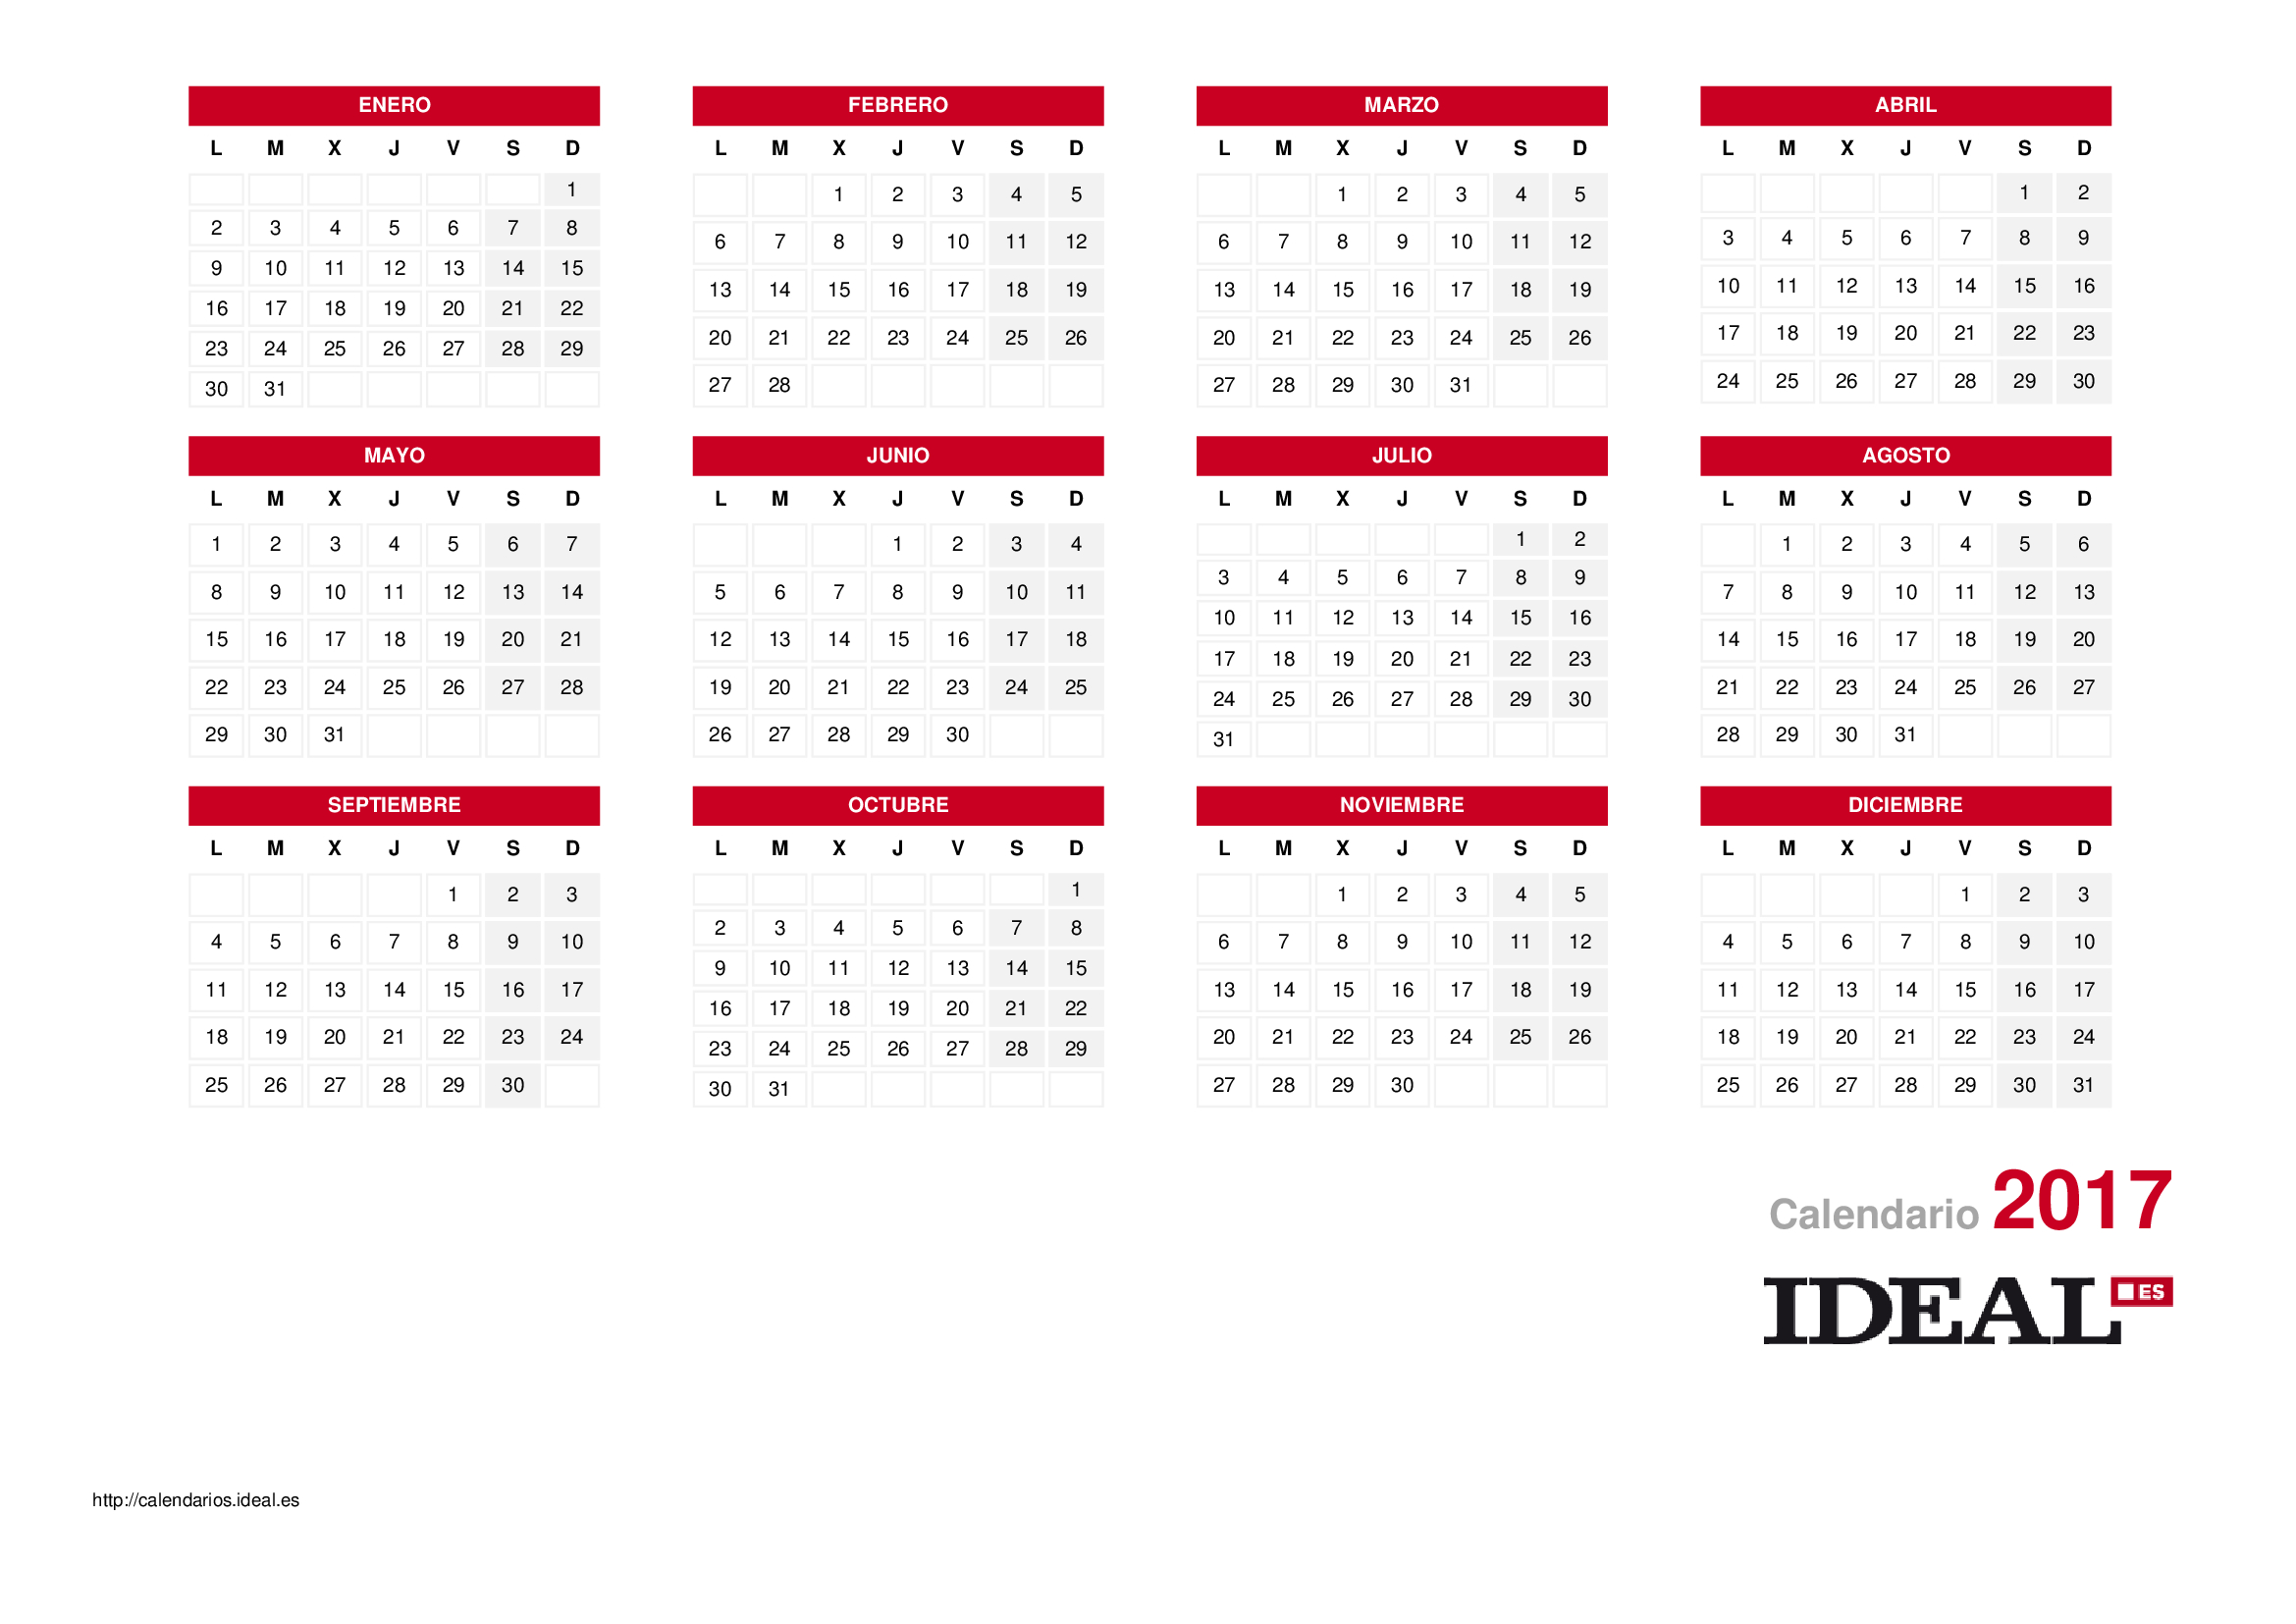 Calendario 2106.Calendario Laboral De 2019 Calendarios Ideal Dias Festivos